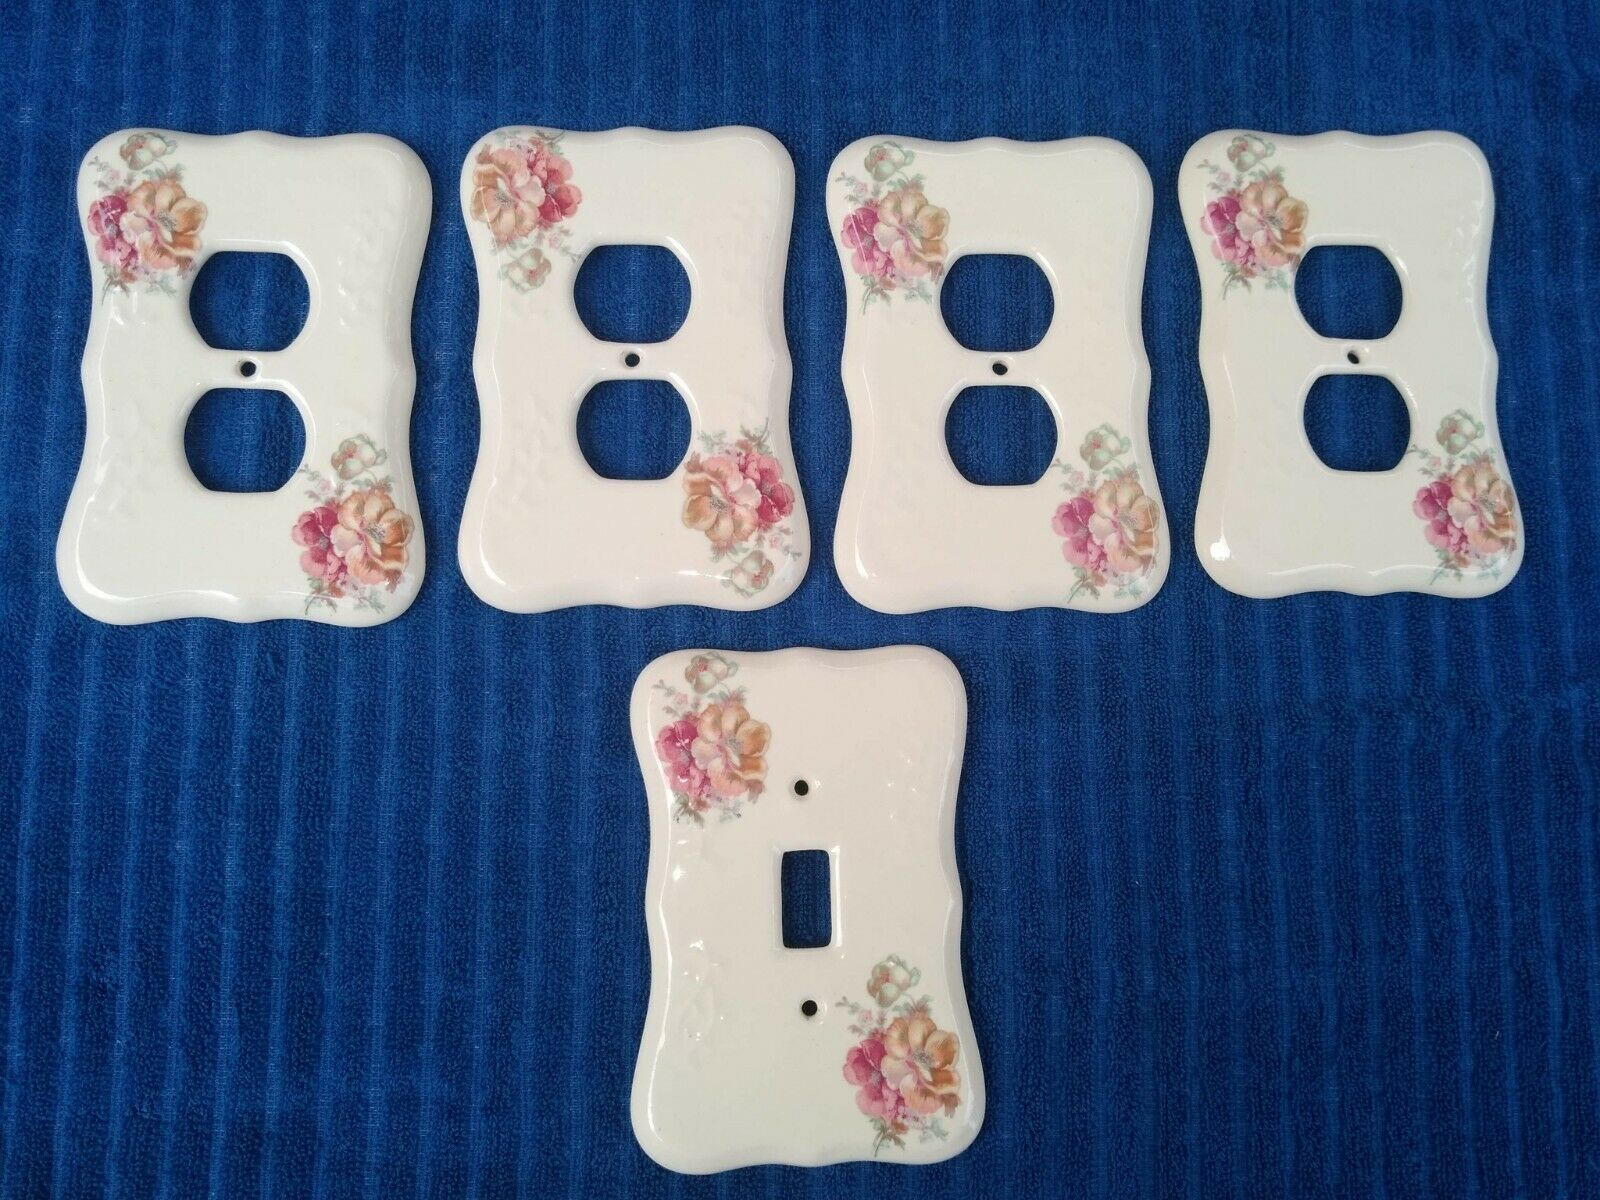 5 Vintage Ceramic Painted Flowers Athena USA Wall Switch Plates Outlet Cover Set - $34.00